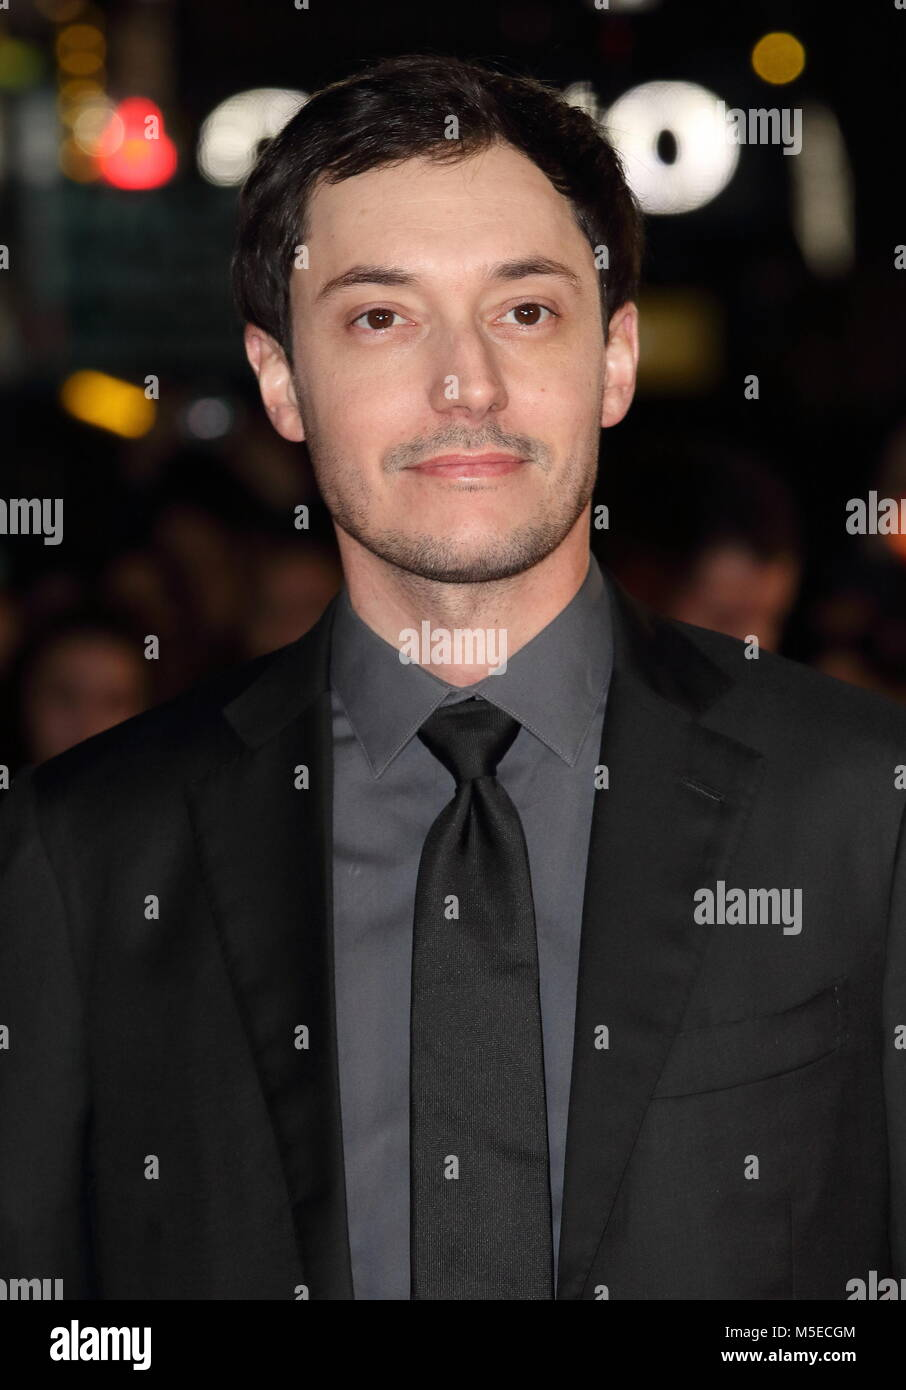 Maze Runner: The Death Cure UK Fan Screening at Vue West End in Leicester Square - Arrivals  Featuring: Wes Ball - Stock Image